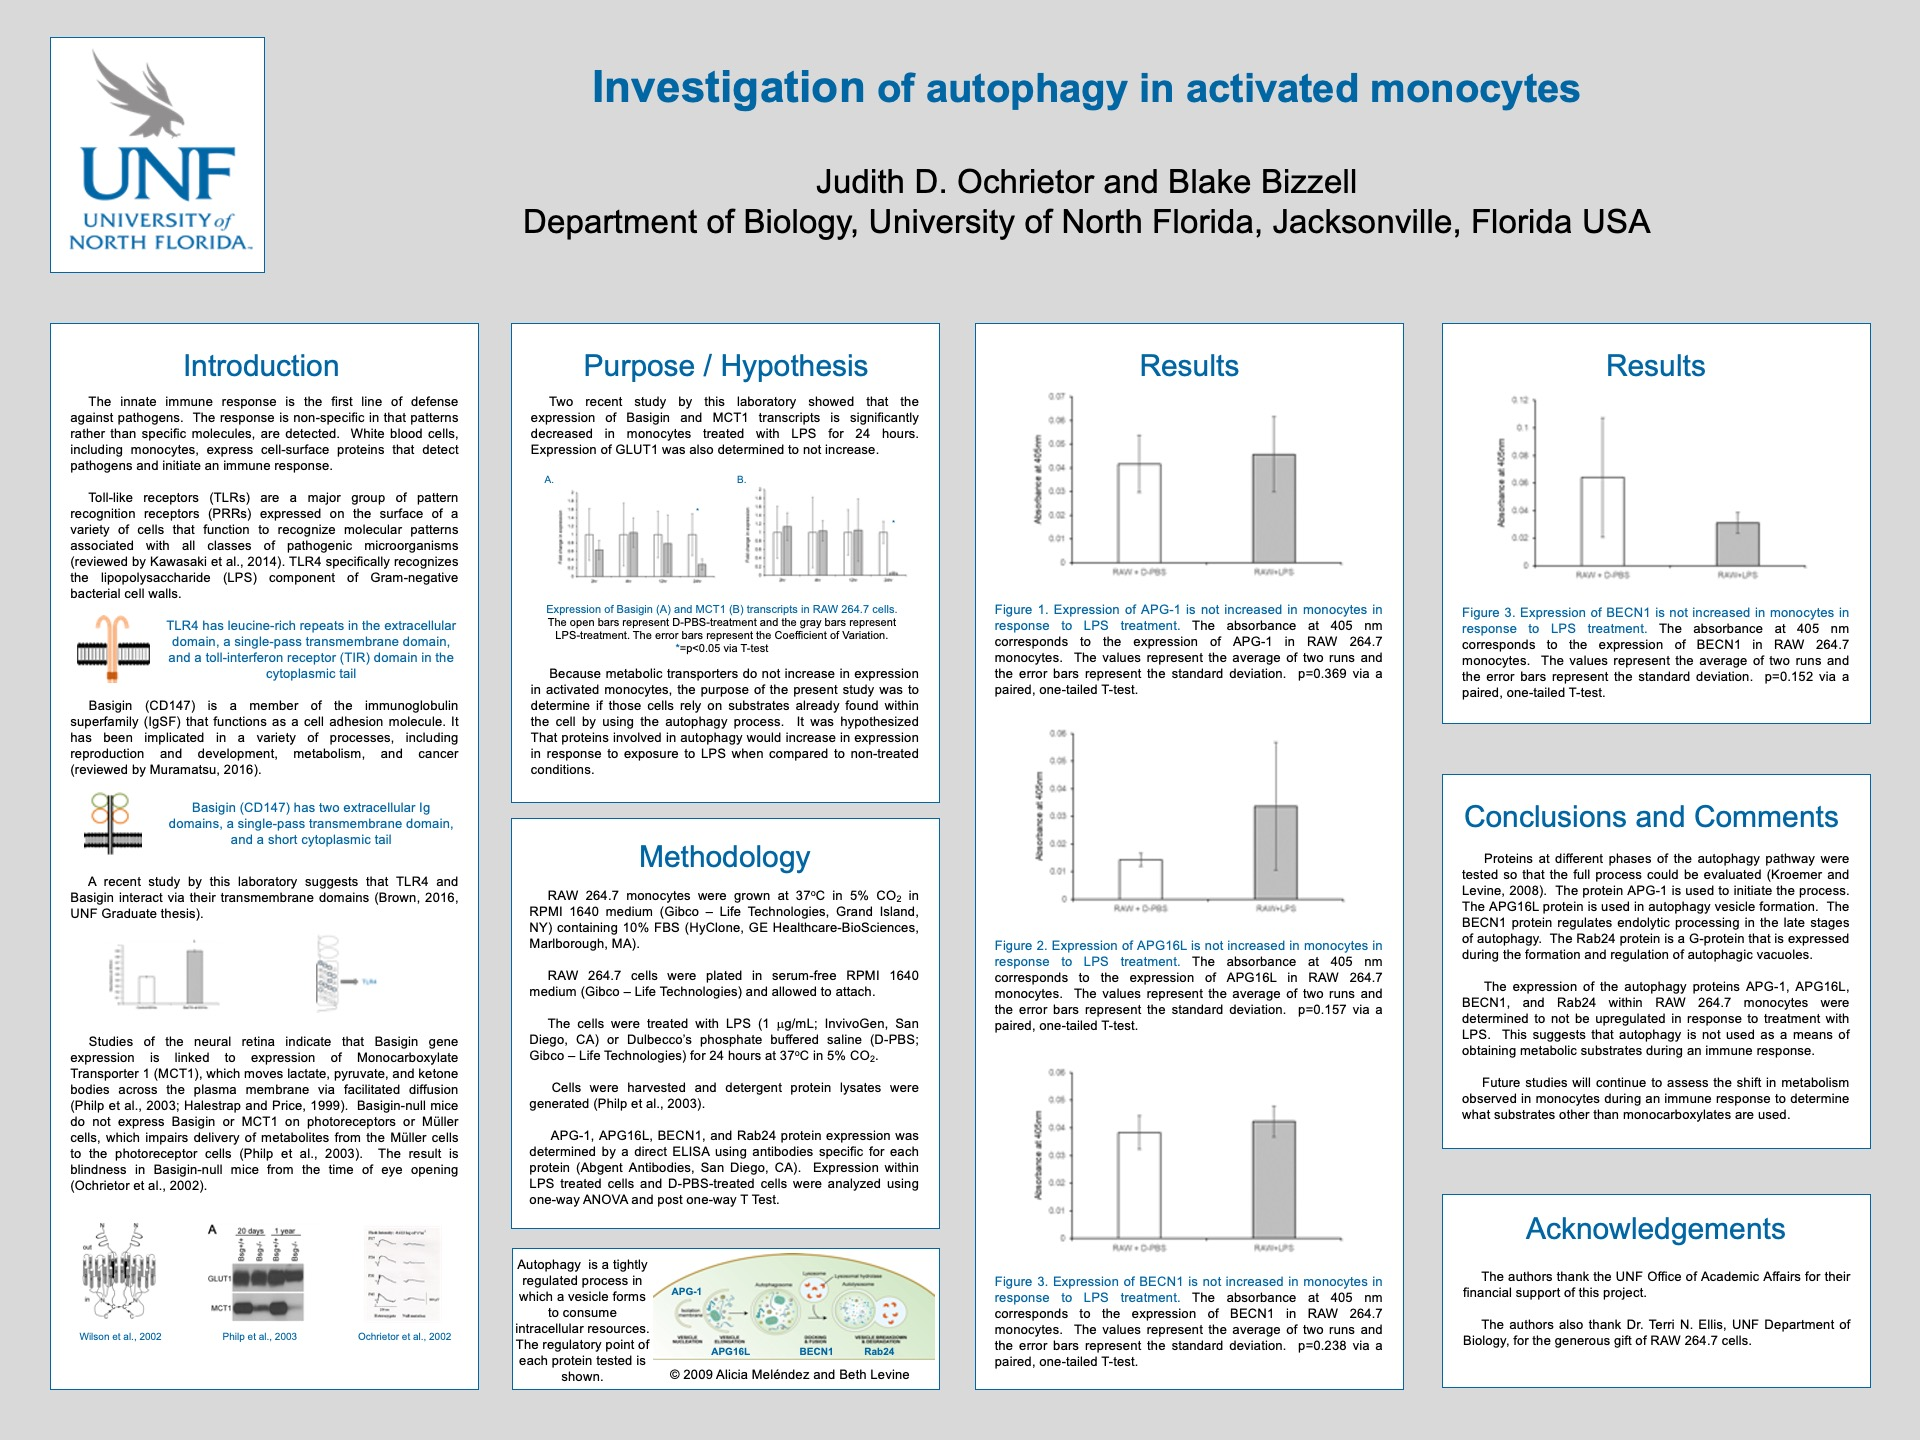 Investigation of autophagy in activated monocytes poster